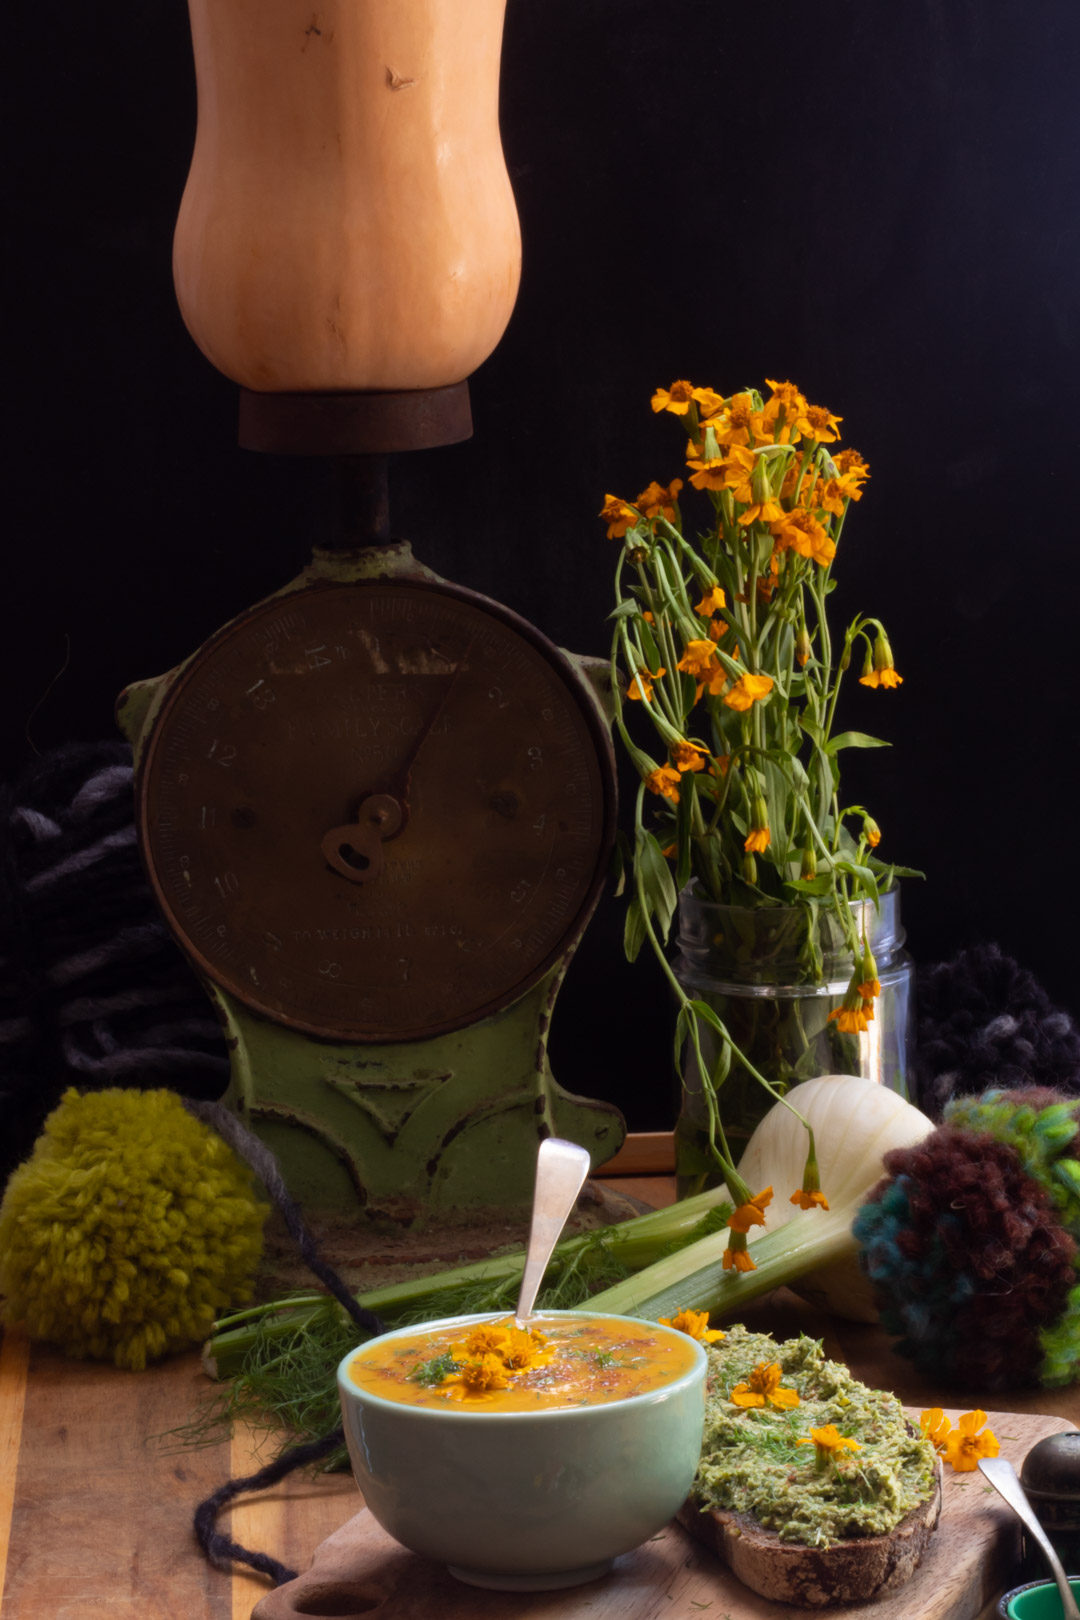 carrot and fennel soup with tarragon, fennel tops and nutmeg with antique kitchen scale